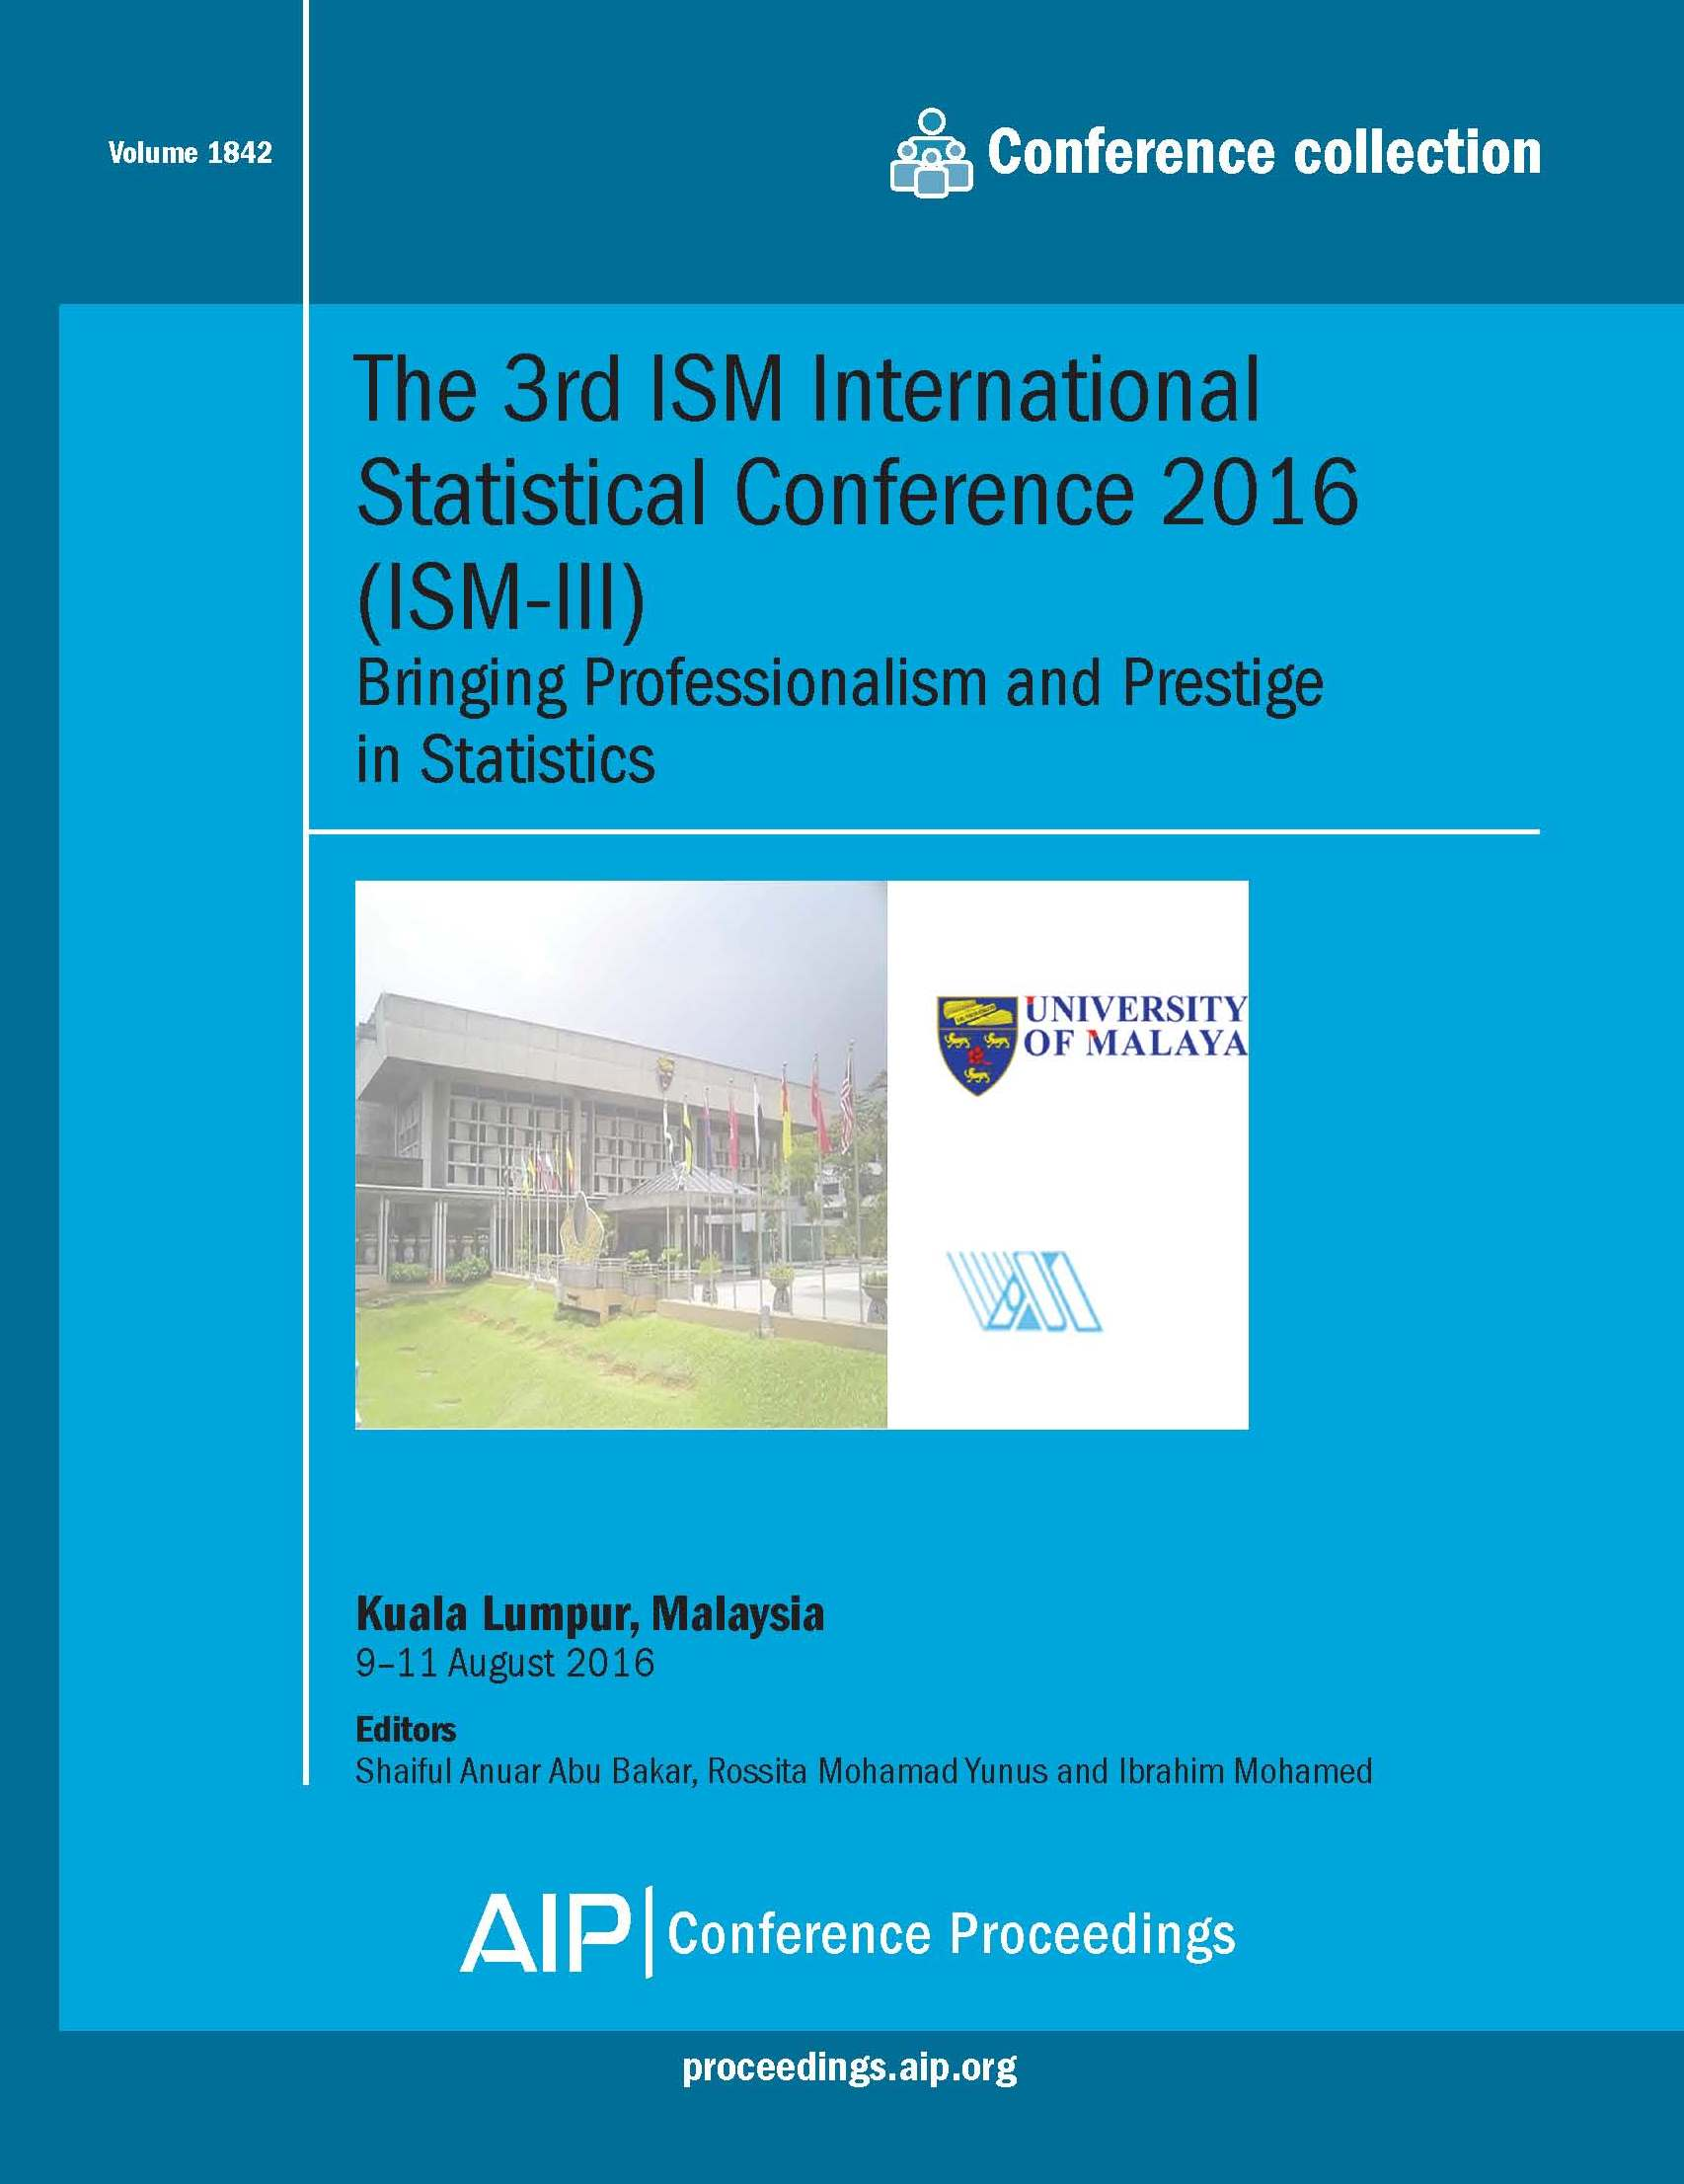 Volume 1842: The 3rd ISM International Statistical Conference 2016